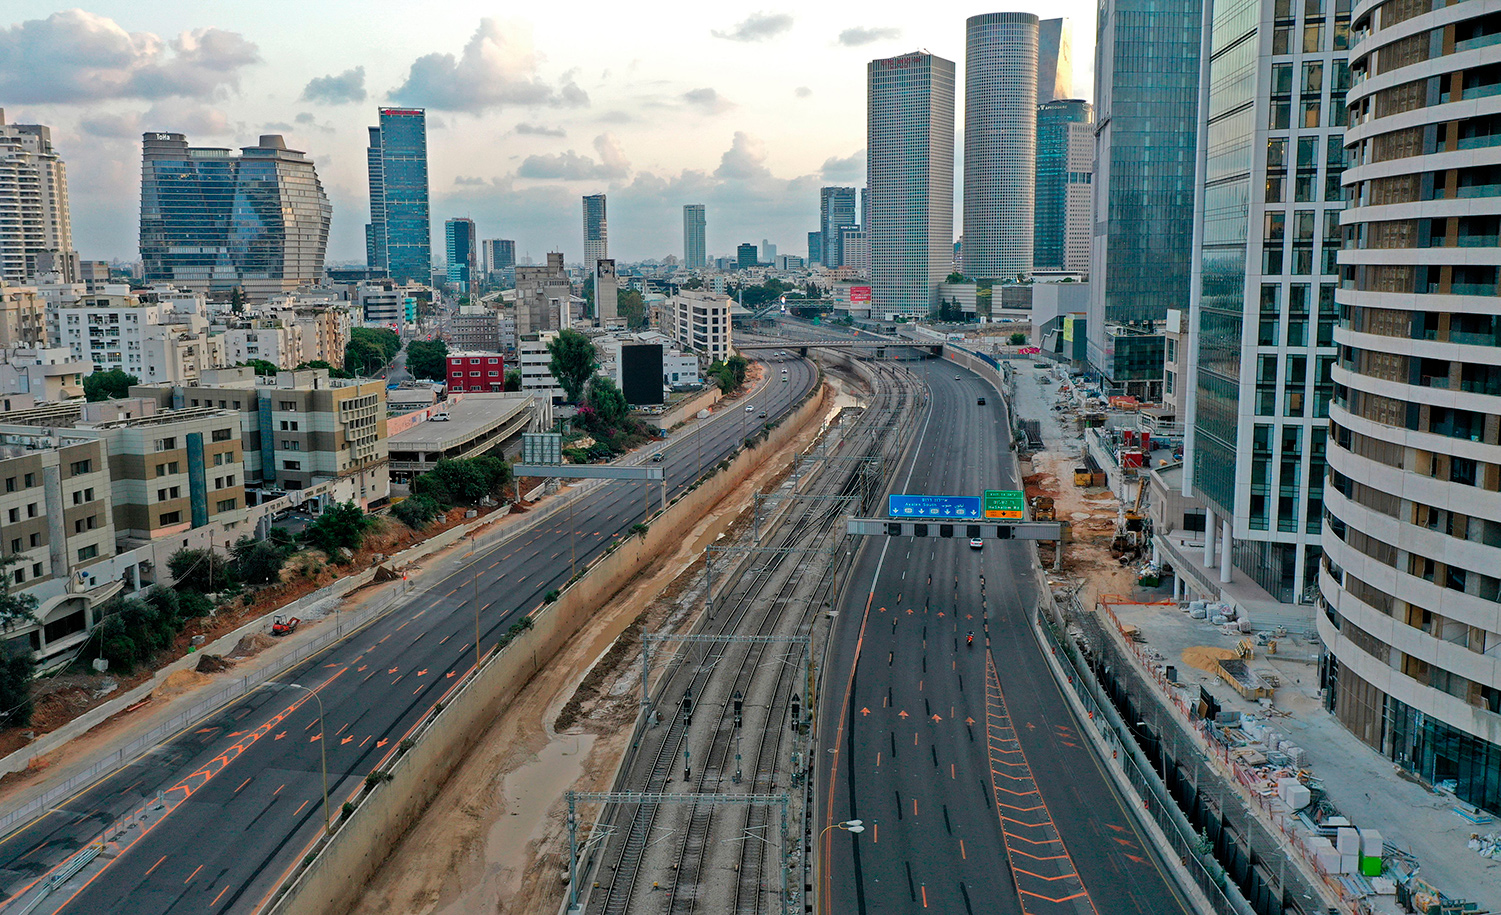 Podcast: Dan Senor with an Update on Israel's Economy in 2020